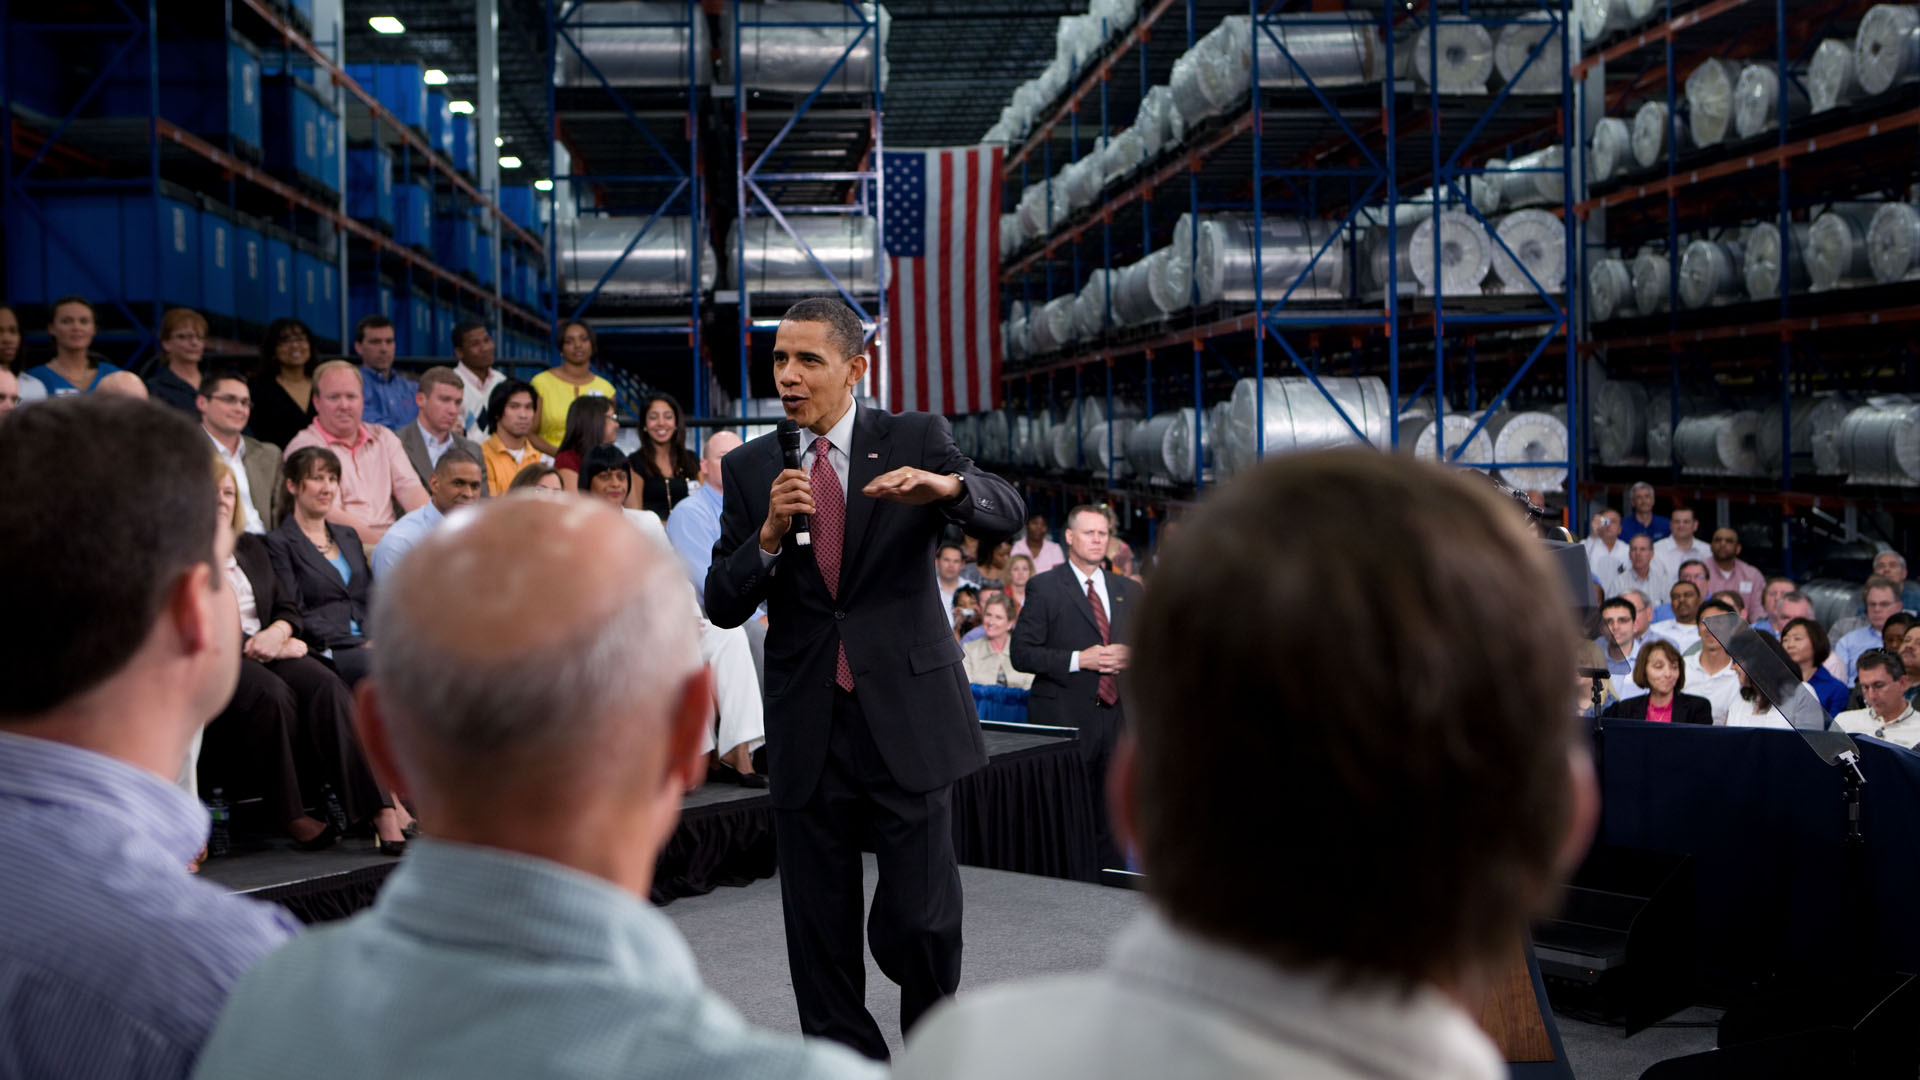 President Obama Speaks at Celgard Inc.